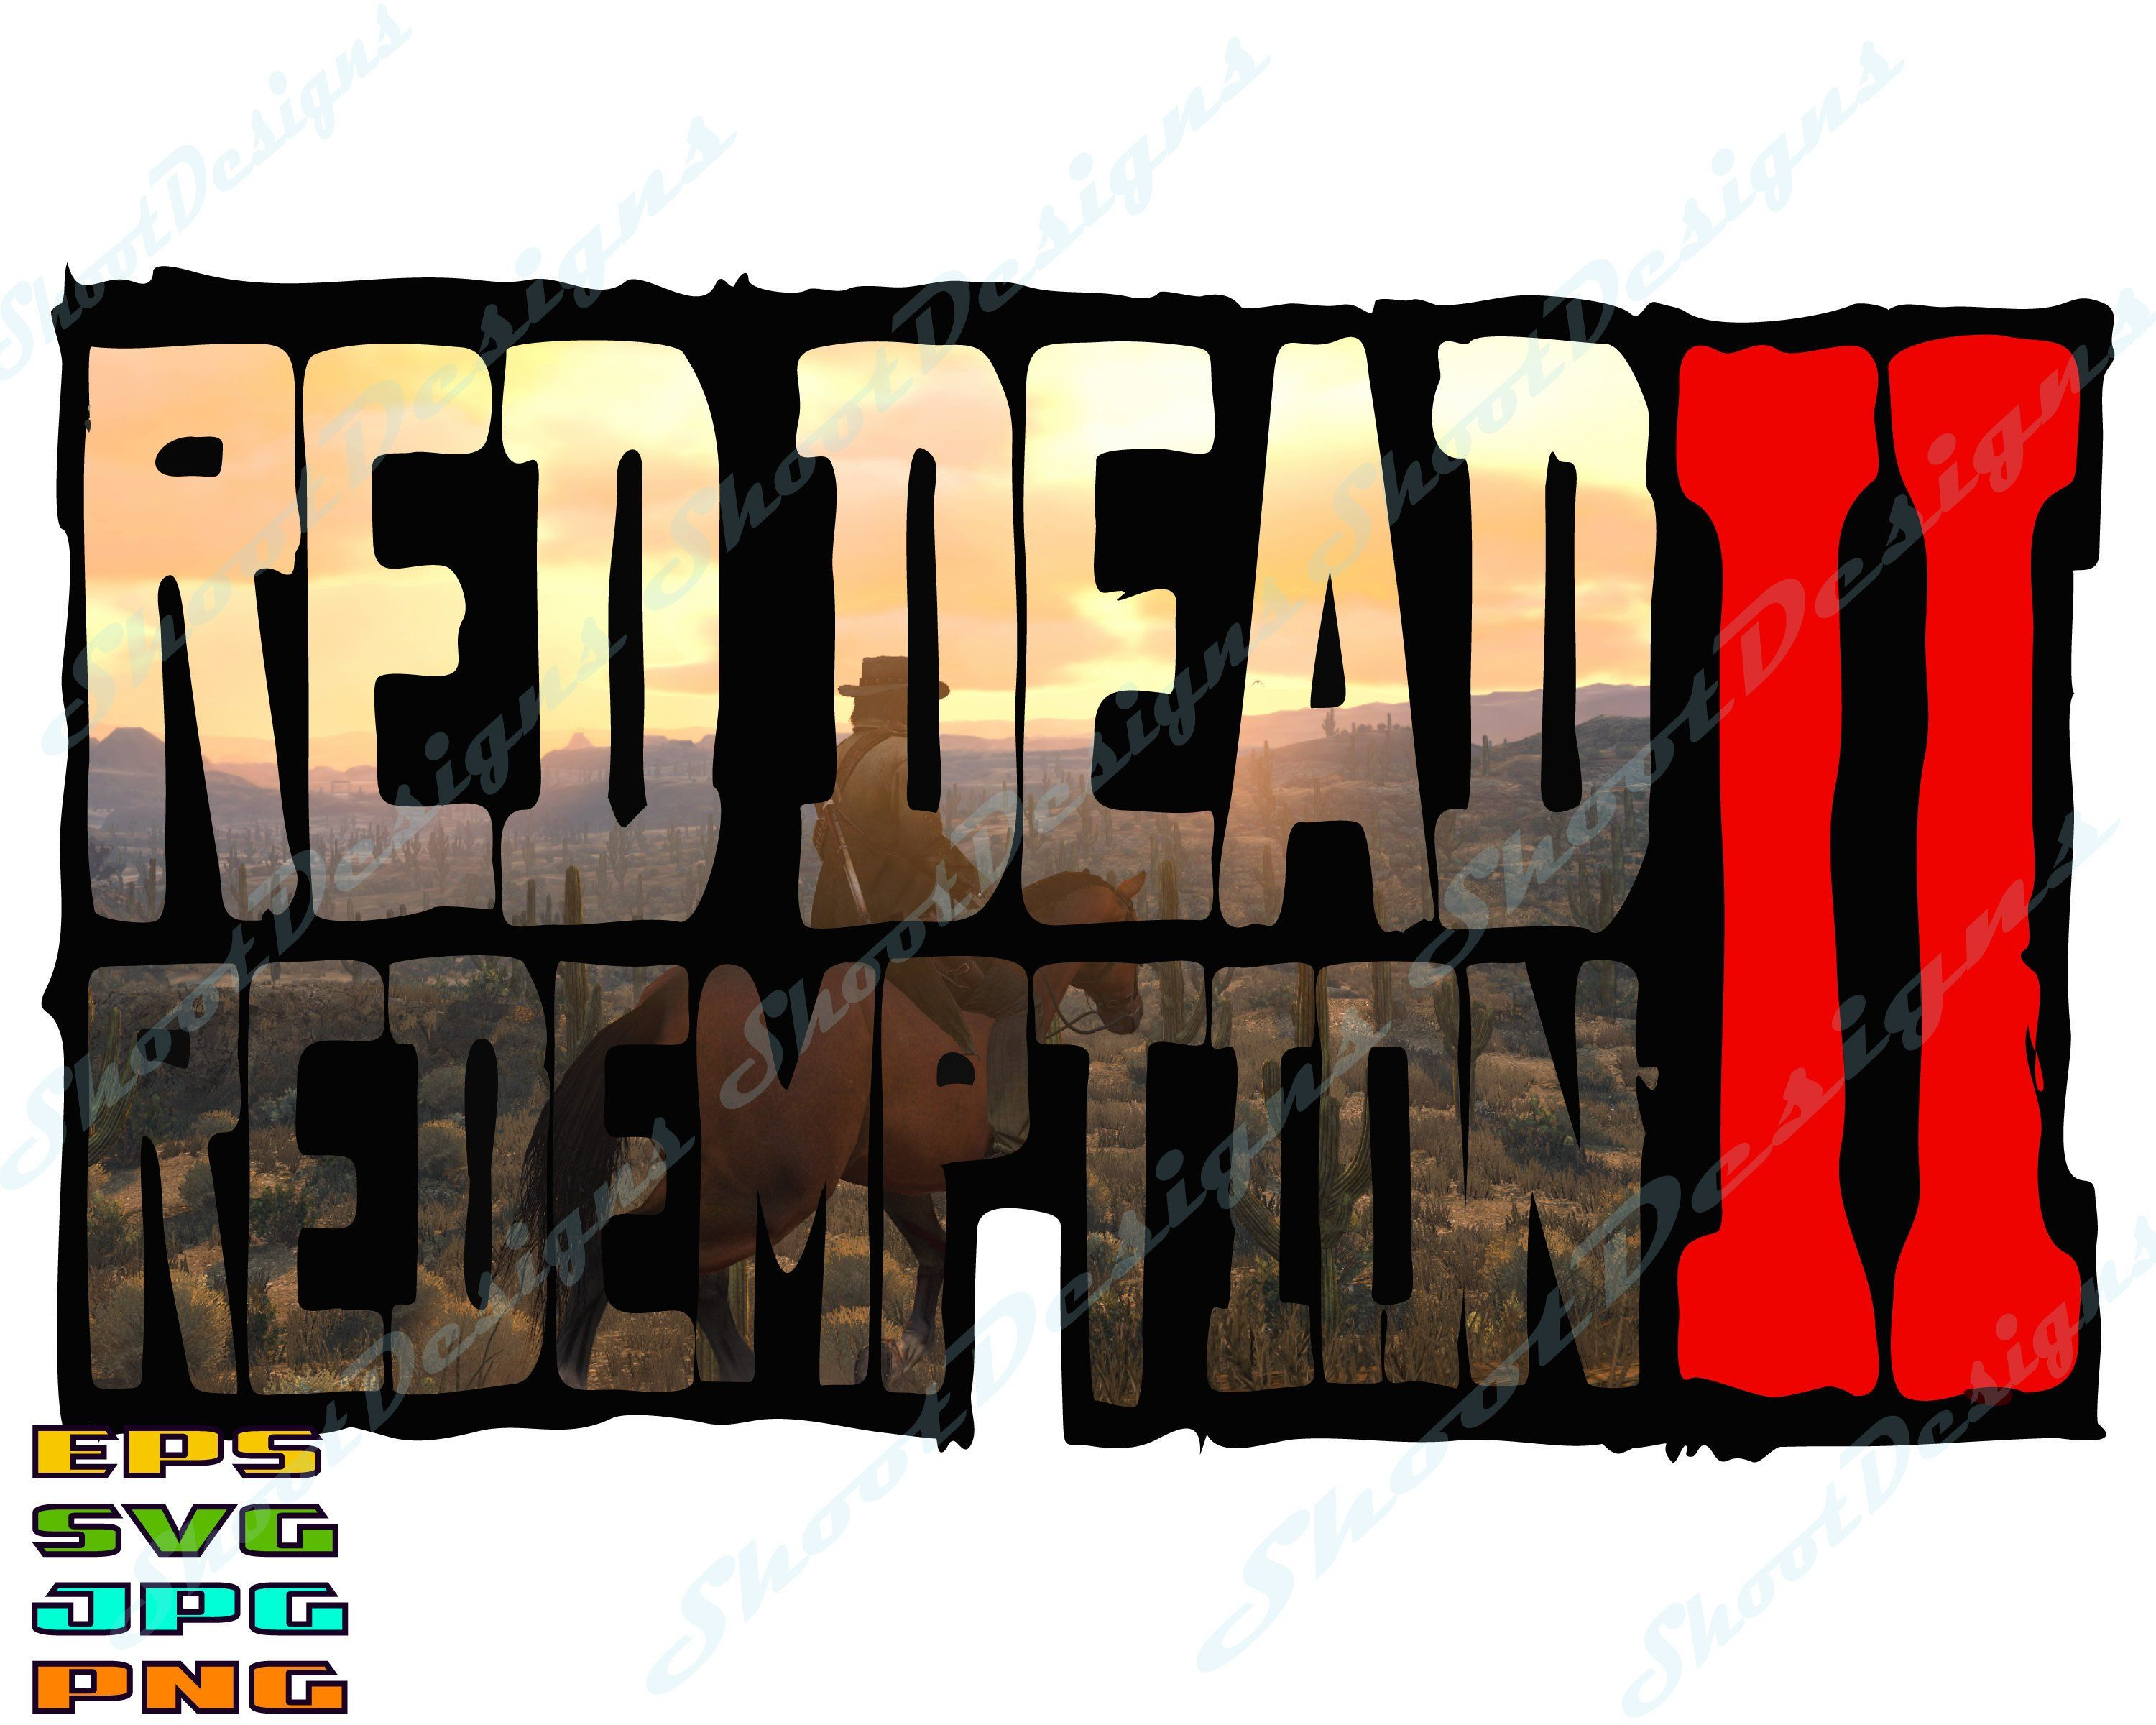 Red Dead Svg Dead Redemption 2 Red Dead Redemption Red Dead 2 Red Dead Redemption 2 Red Dead Game Rdr2 R Red Dead Redemption Art Red Dead Redemption Art